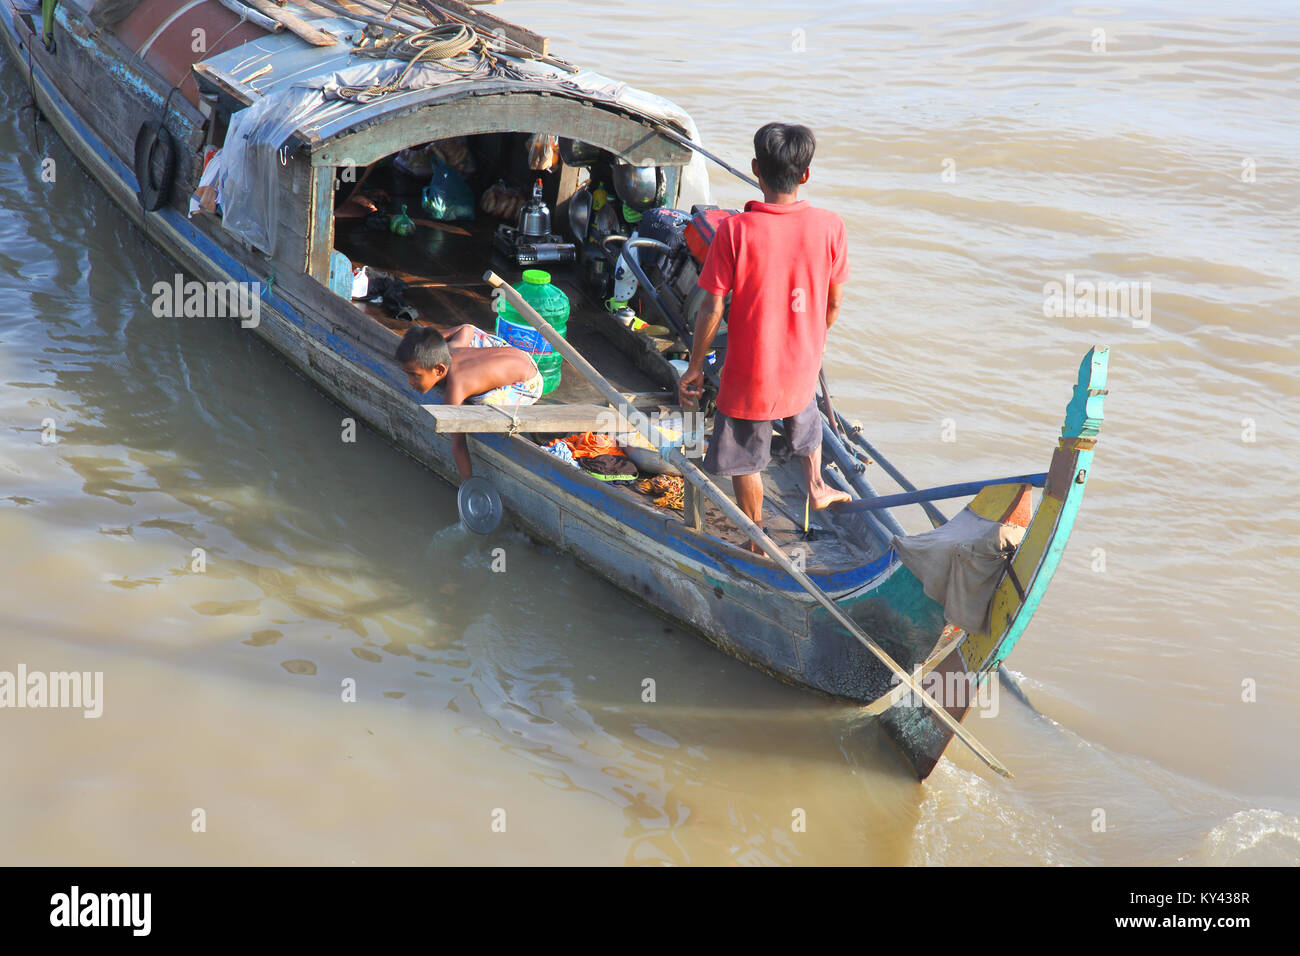 washing dishes in the river at chau doc vietnam - Stock Image